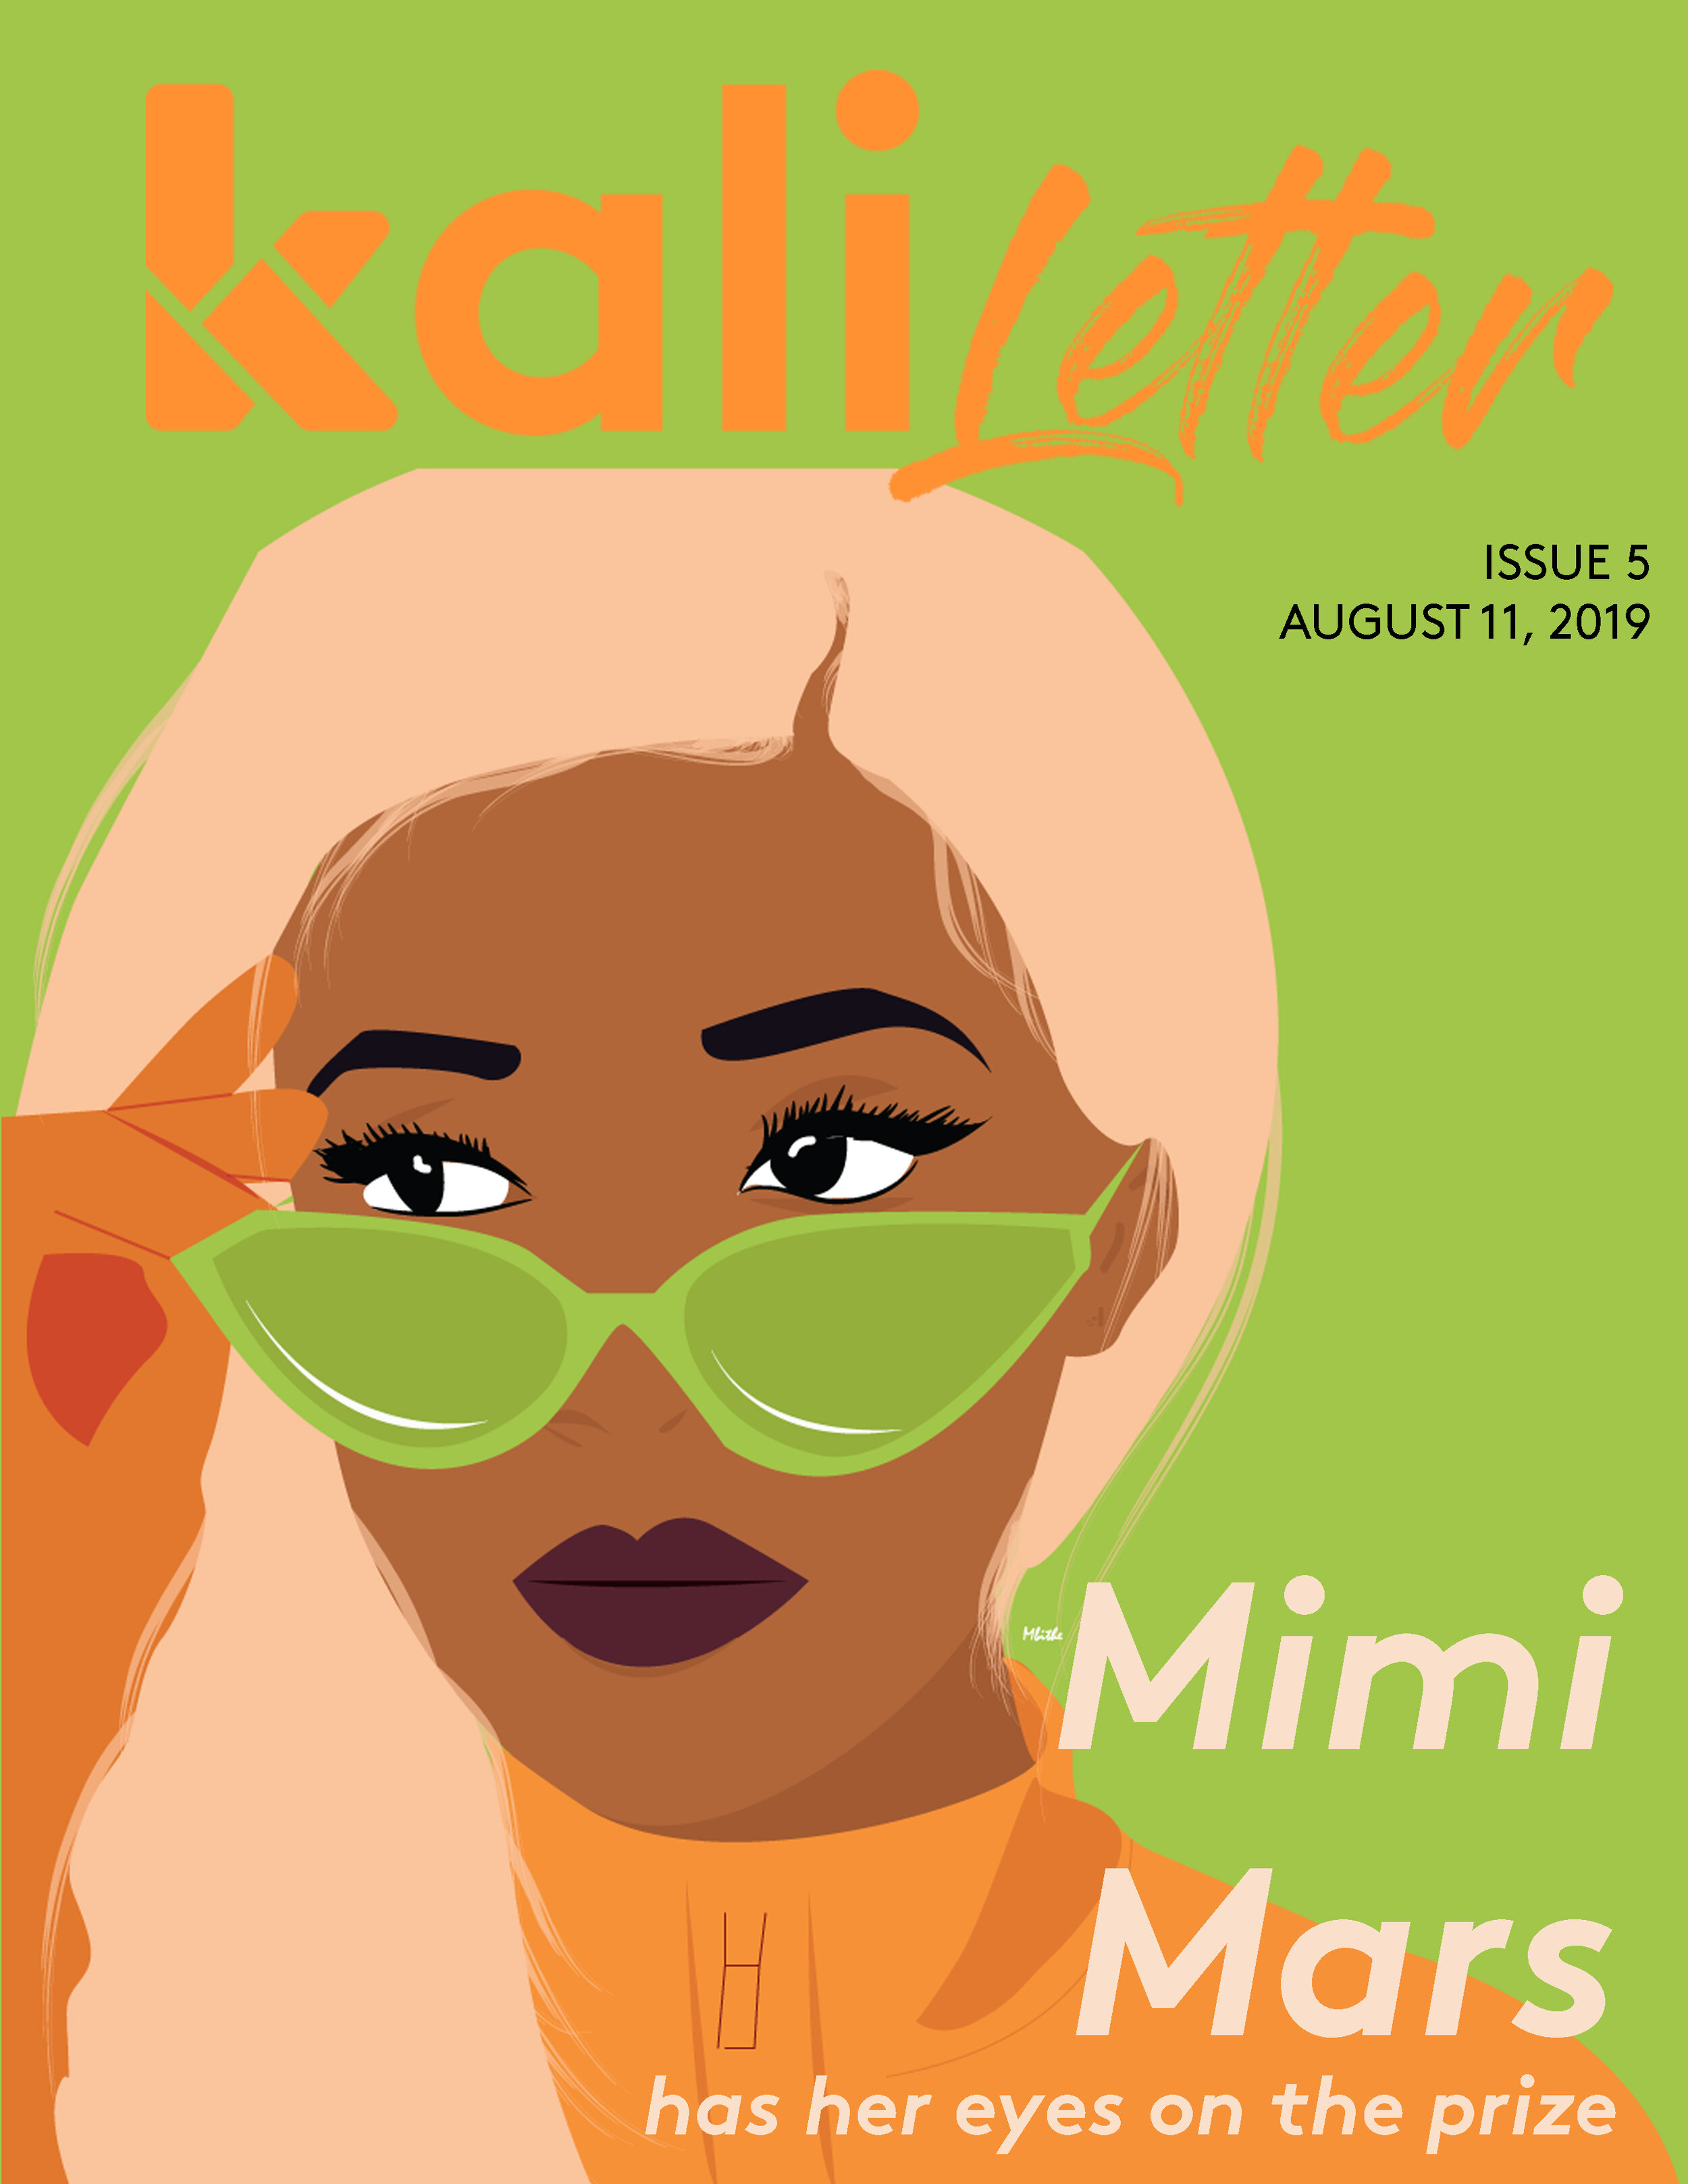 MIMI MARS HAS HER EYES ON THE PRIZE     Issue #:  5  Release Date:   August 11, 2019    With new music and her debut film on the way, this Mdee sister is determined to create her own lane.     READ THIS IN KISWAHILI/ SOMA HII KWA KISWAHILI